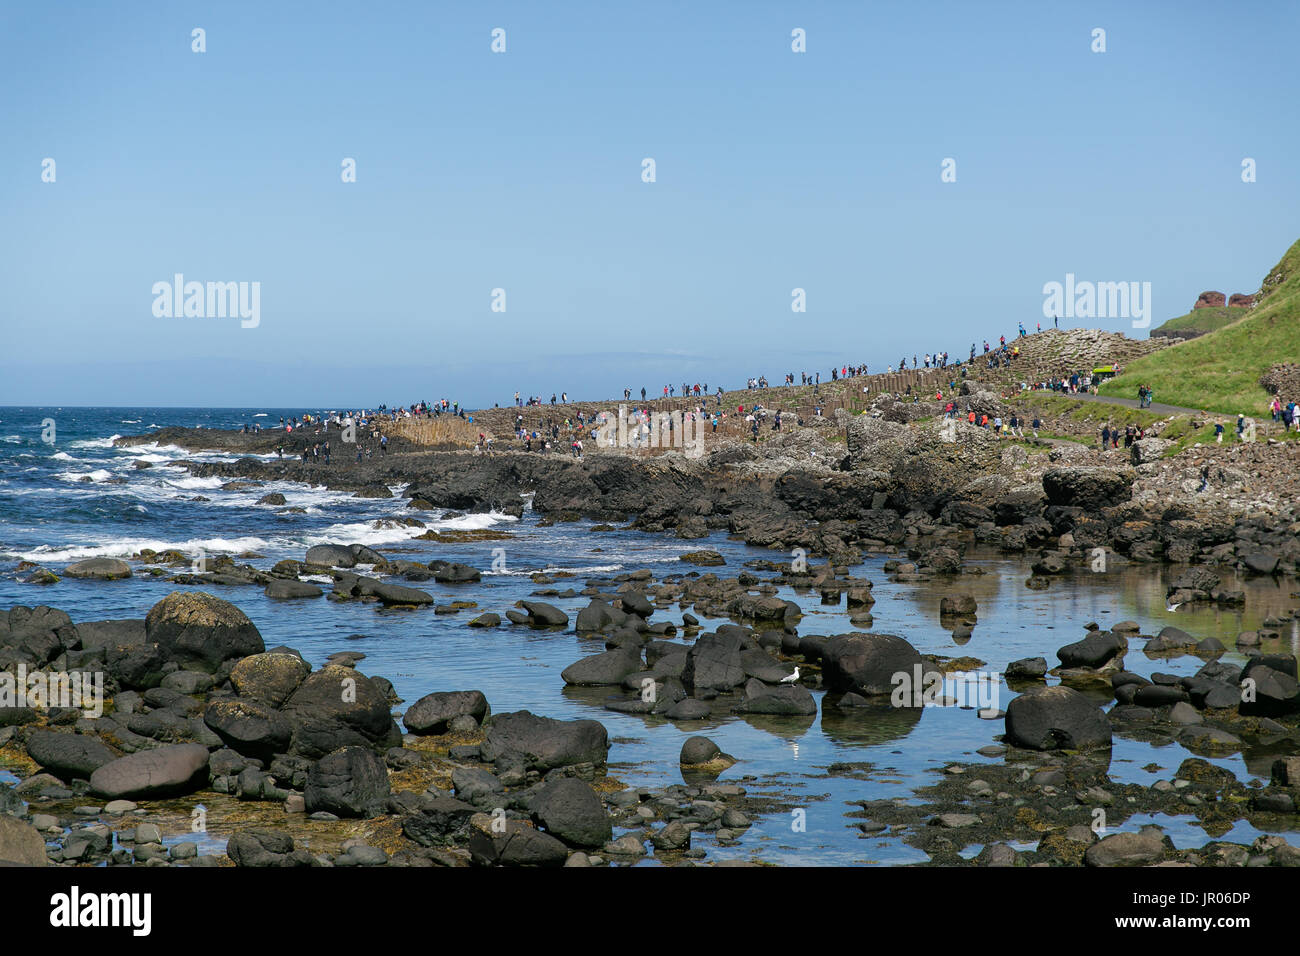 View on the Giant`s Causeway coast stretching out to the Atlantic ocean occupied by tourists and visitors Bushmills Antrim Northern Ireland Stock Photo